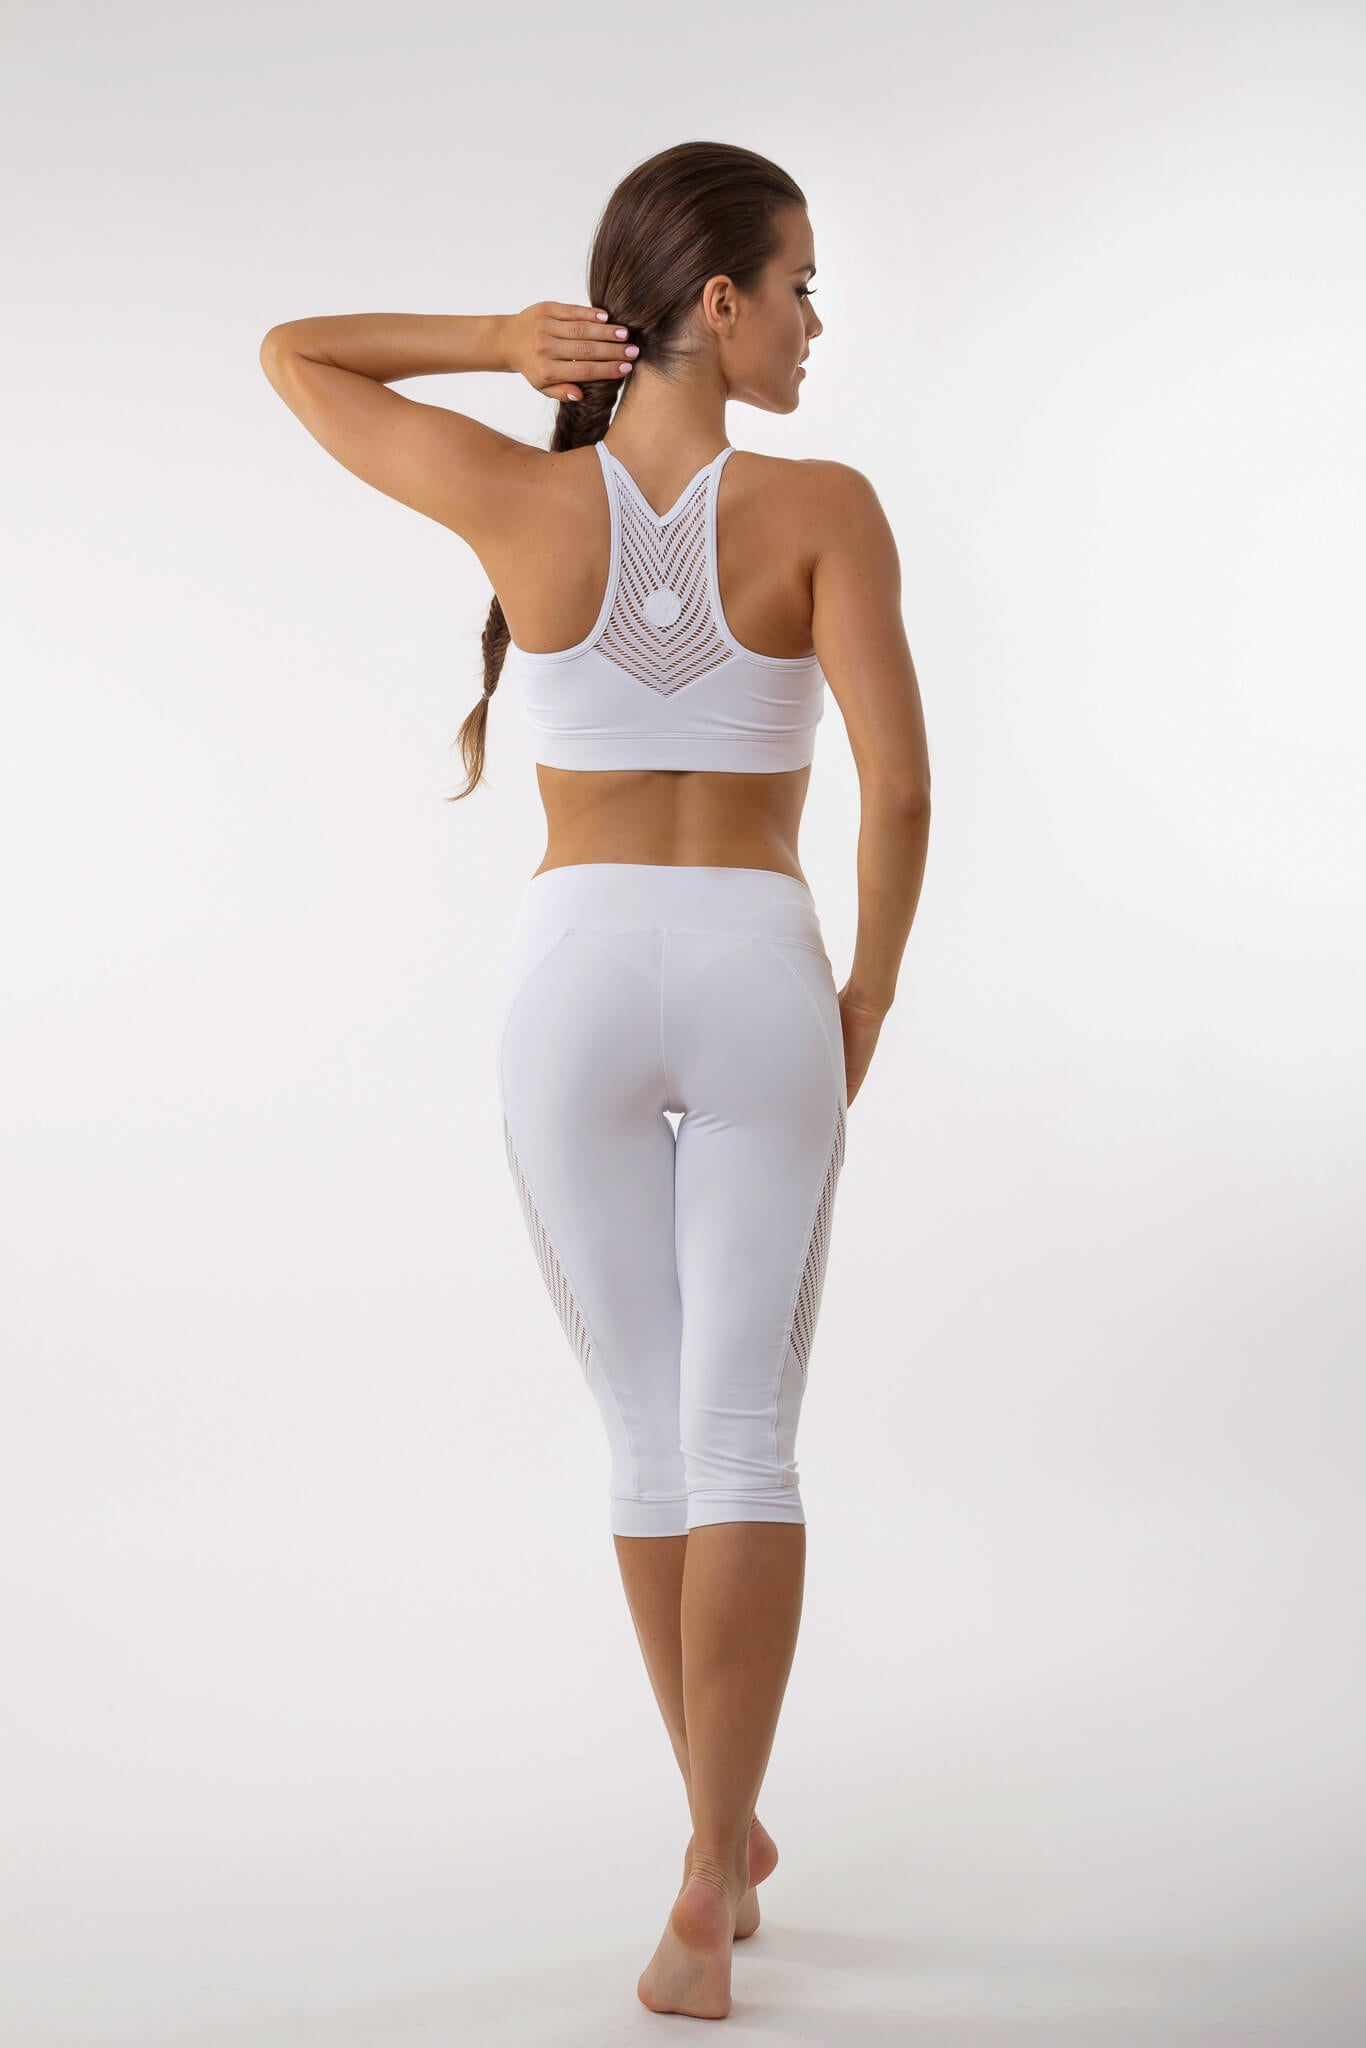 Fishbone crop yoga leggings - BarbellPrincessUsa